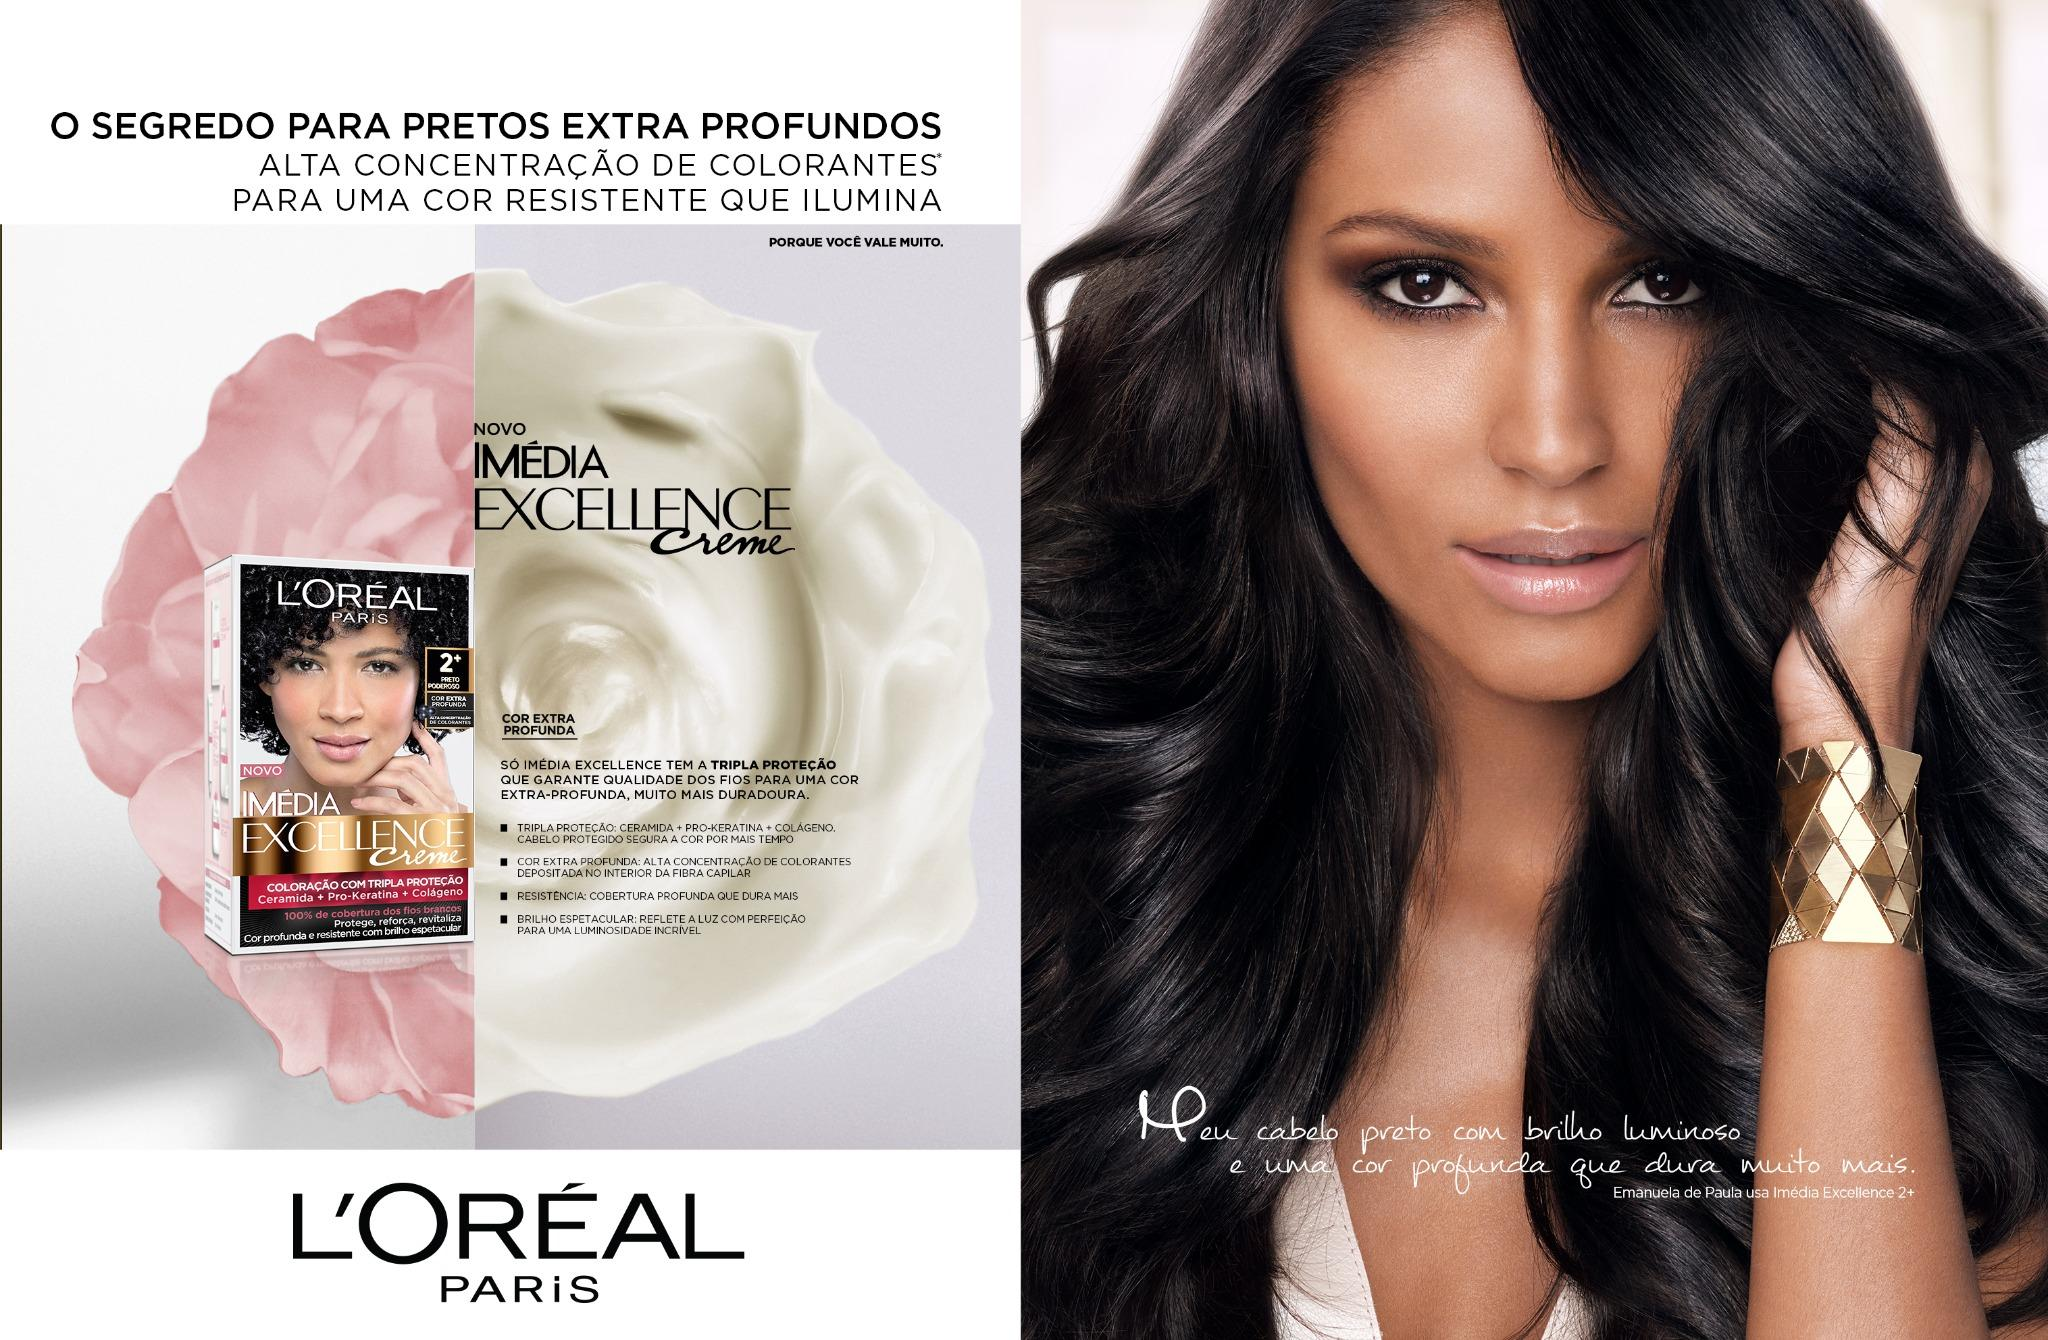 RT @TheSocietyNYC: #campaign  @EmanuelaDePaula is a remarkable beauty in @LorealParisBR's new #Excellence ads! http://t.co/wsXCMZciPM